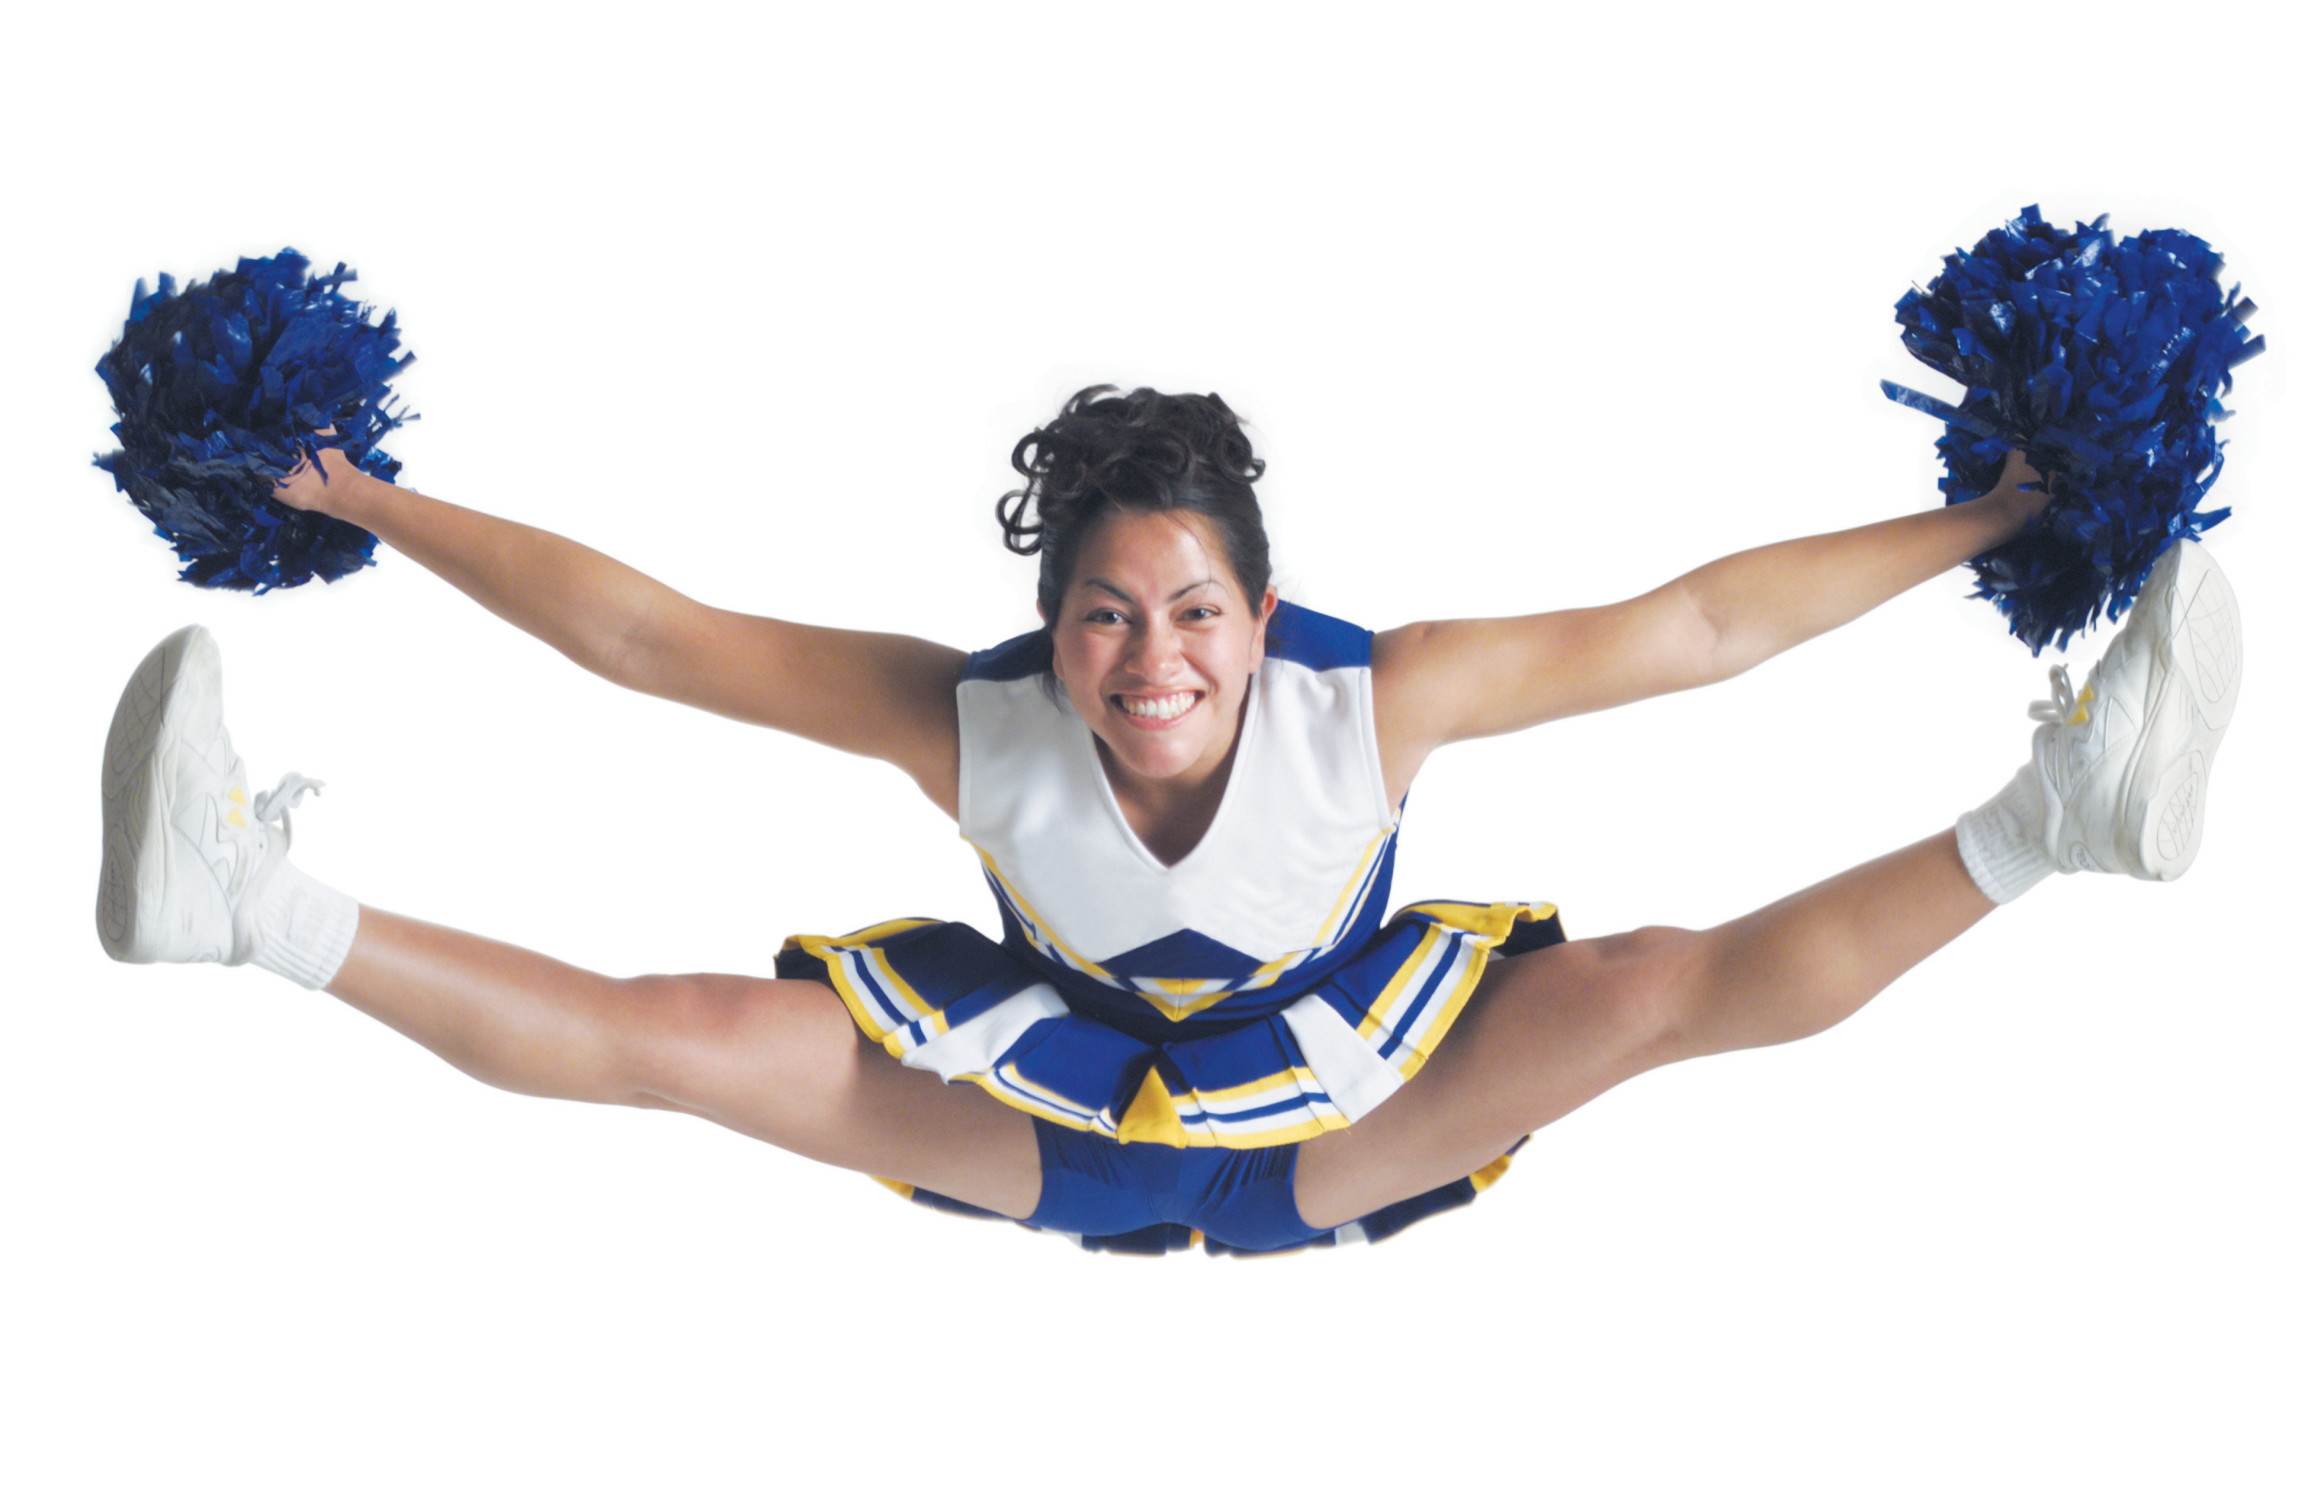 Cheerleading is all about T 'n' A- No. It's all about getting male